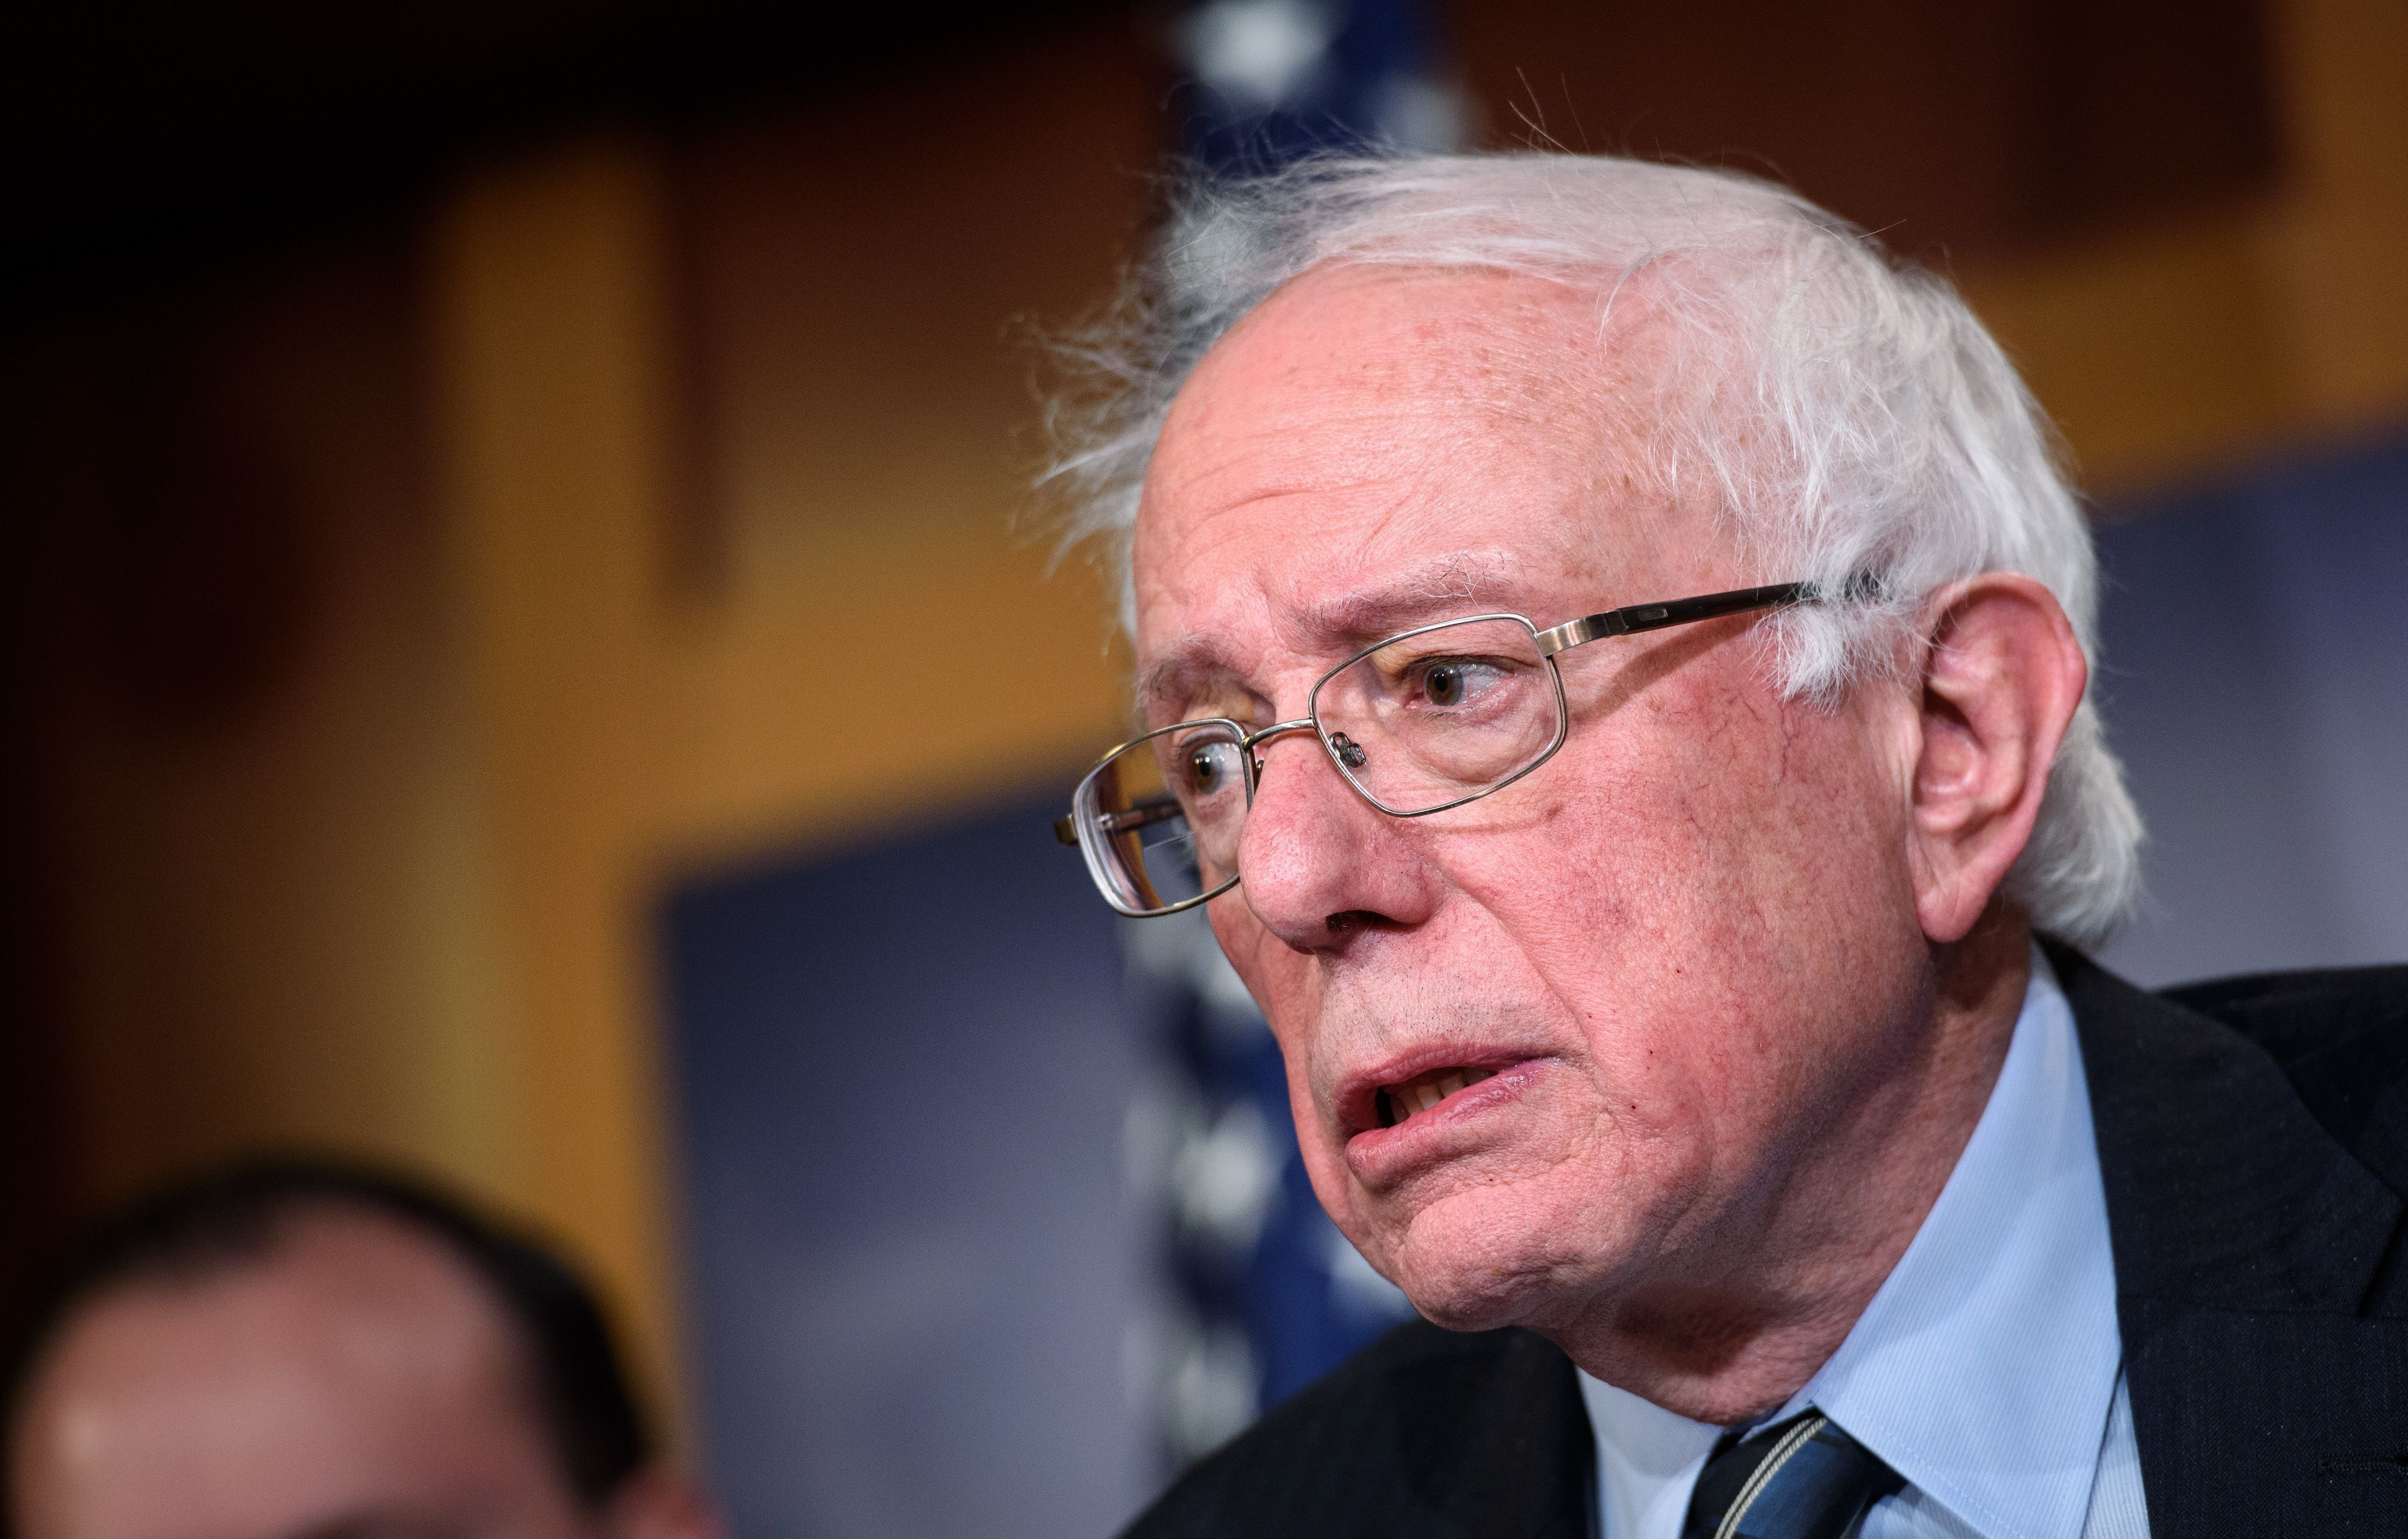 Senator Bernie Sanders, I-VT, speaks after the Senate voted to withdraw support for Saudi Arabia's war in Yemen, in the Senate TV studio at the US Capitol in Washington, DC on December 13, 2018. - The US Senate sent a fresh warning to President Donald Trump and Saudi Arabia Thursday by approving a resolution to end US military support for Riyadh's war in Yemen. The largely symbolic resolution cannot be debated in the House of Representatives before January, and would likely be vetoed in any case by Trump, who has repeatedly signaled his backing for the Saudi regime. (Photo by MANDEL NGAN / AFP)        (Photo credit should read MANDEL NGAN/AFP/Getty Images)